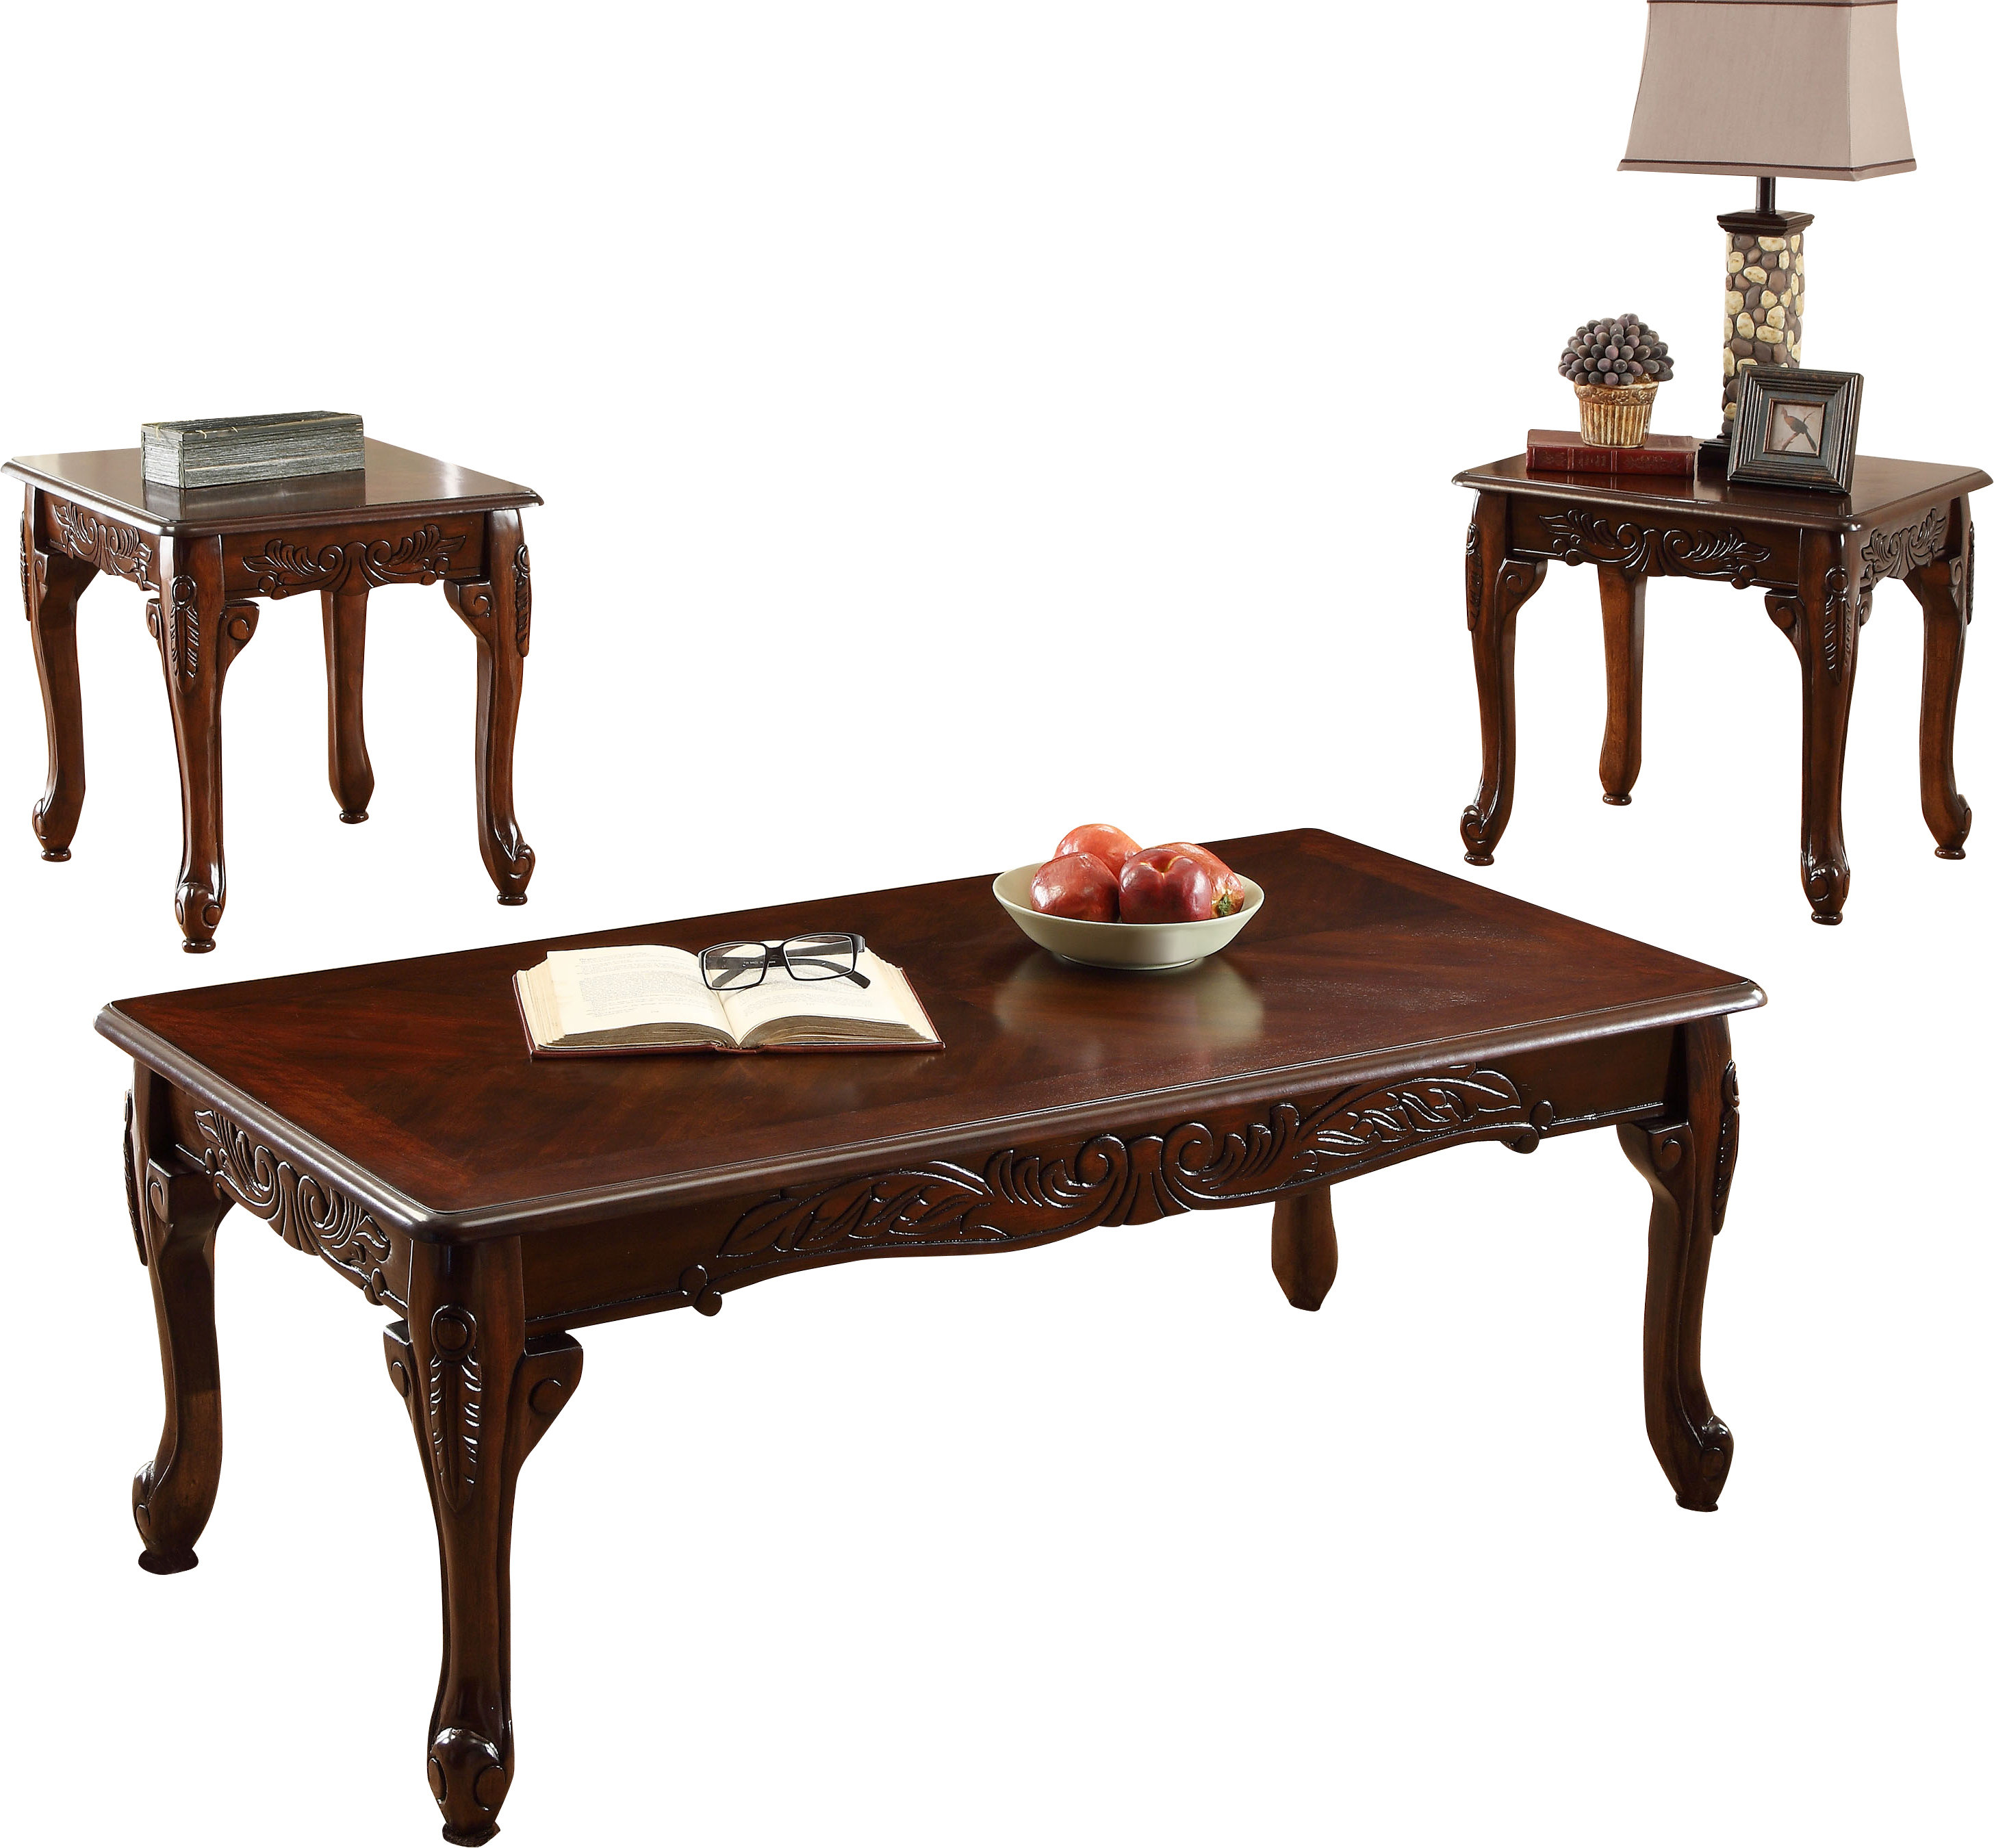 astoria grand harrietta piece accent table set reviews glass side tables for living room small pine bookcase gold end target bar height drop leaf dining thin entryway antique